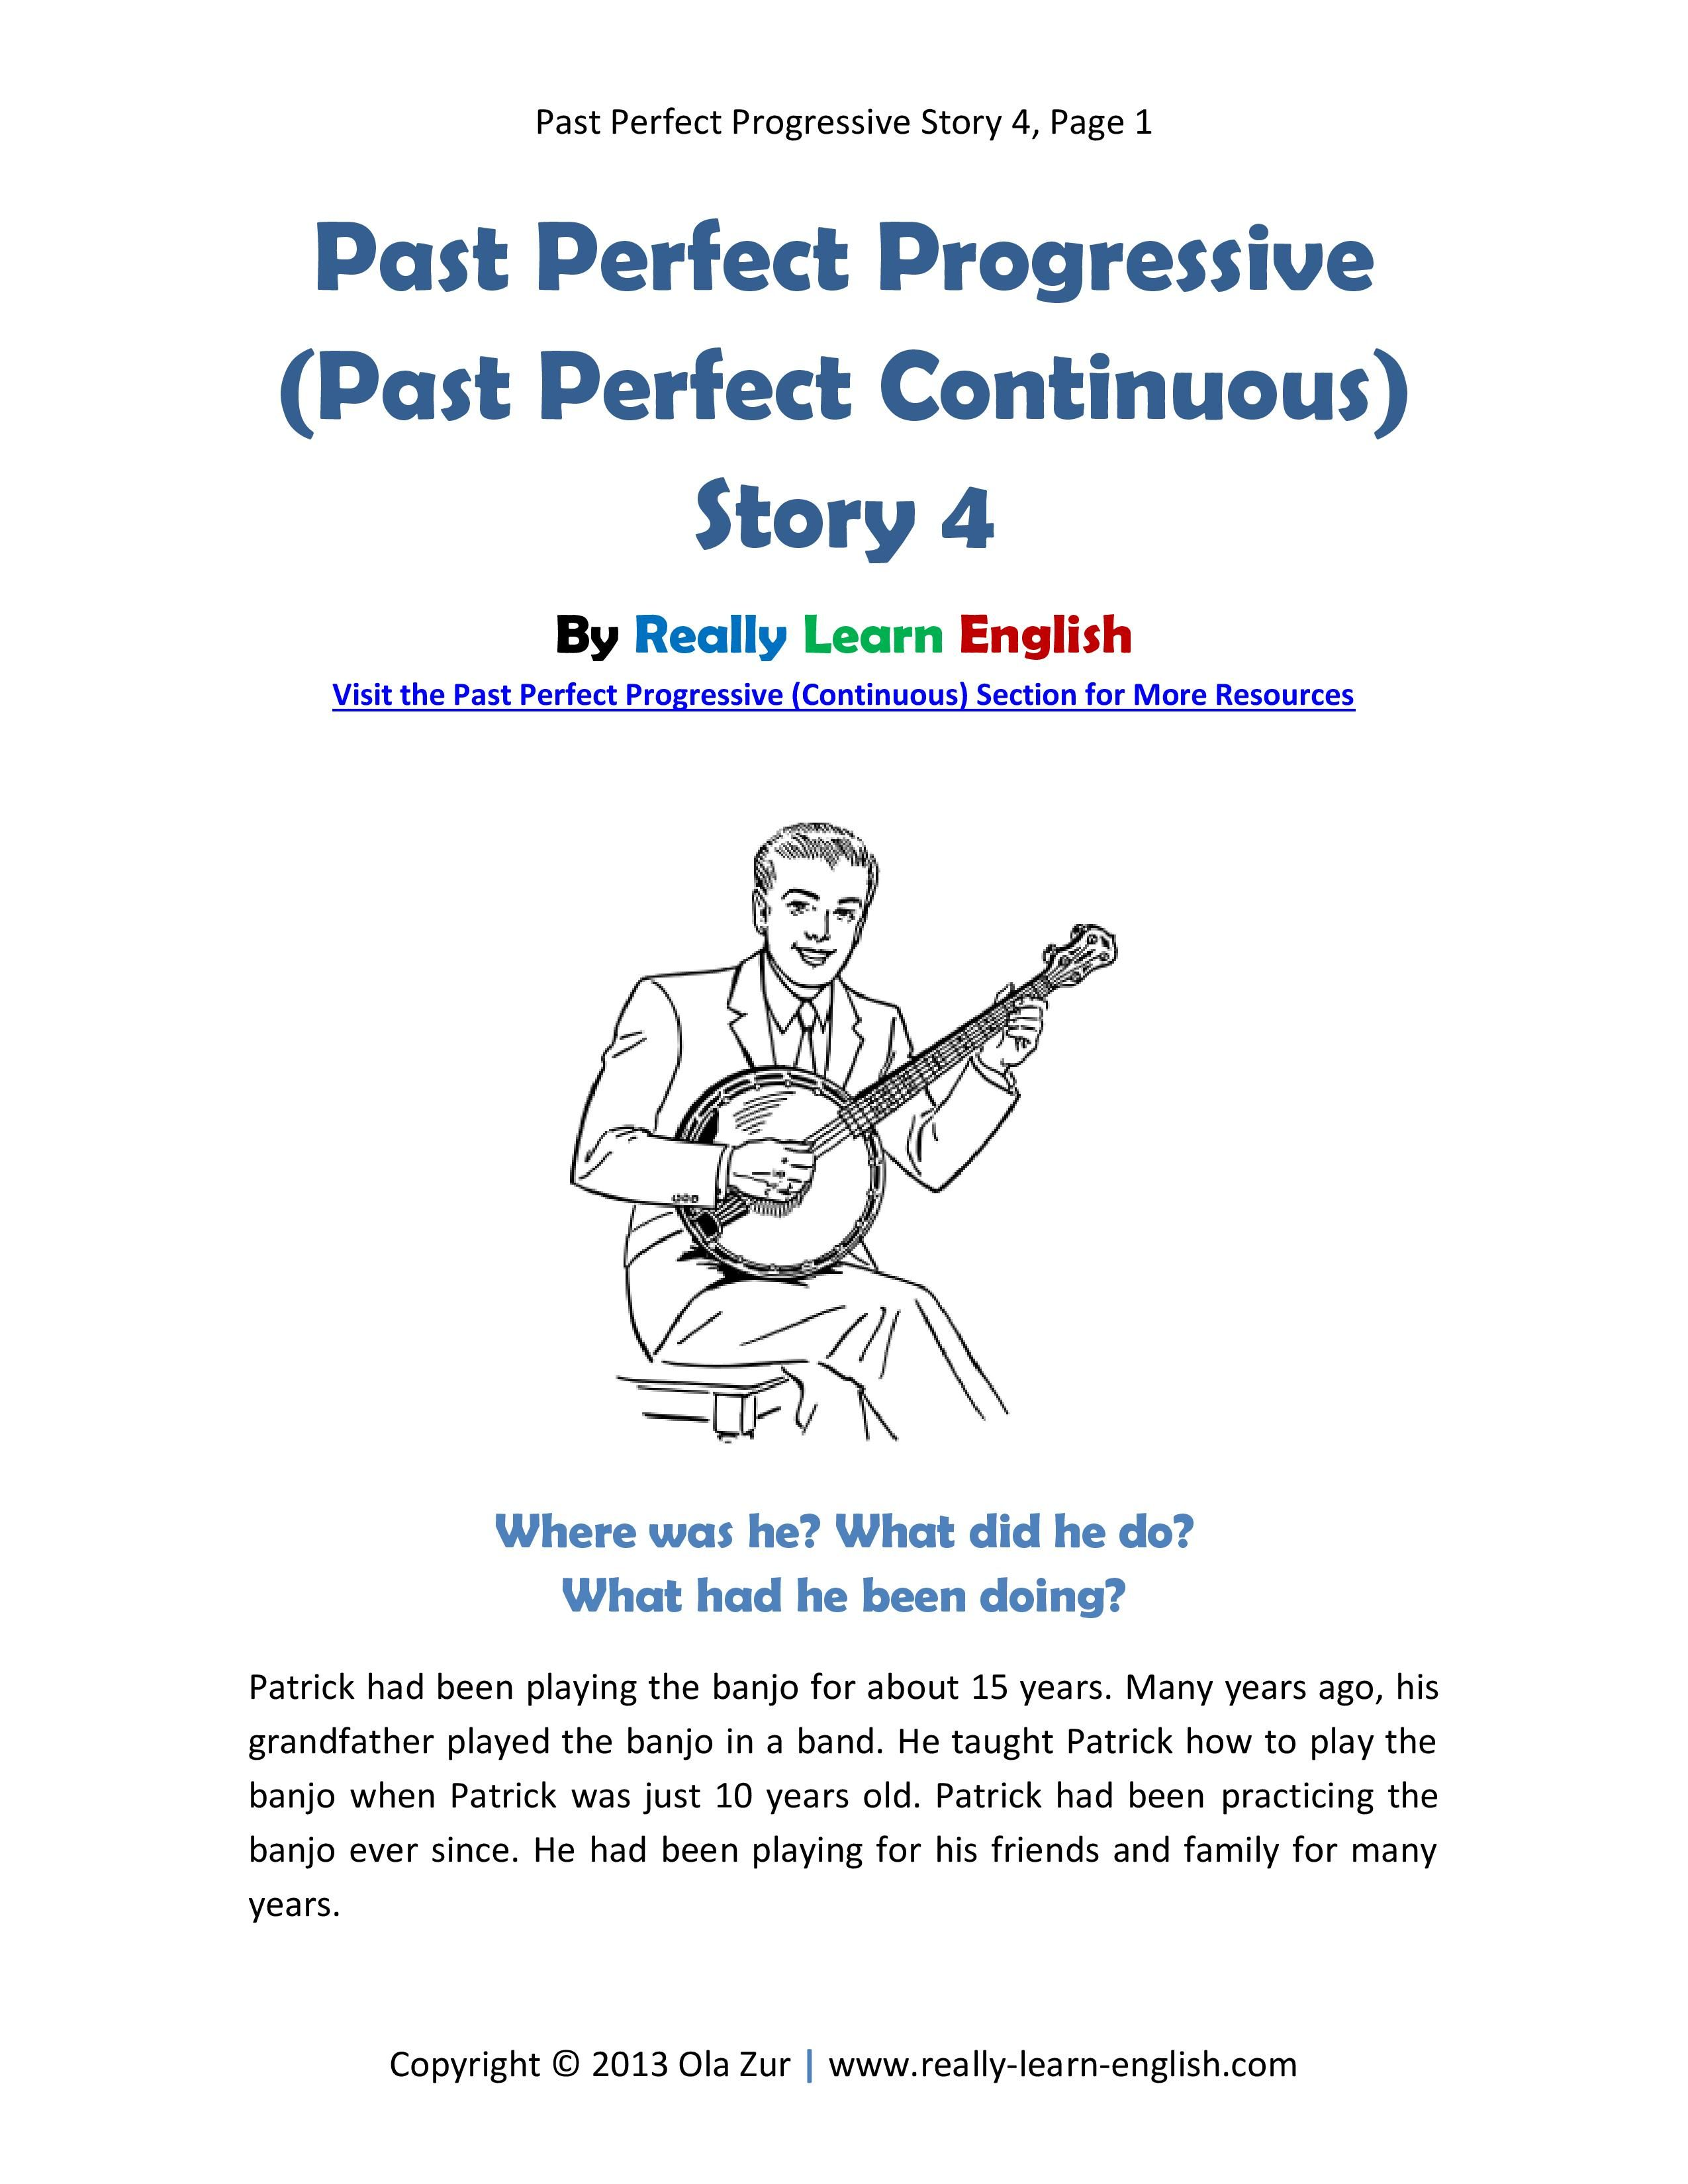 Free Printable Short Story With Worksheets To Practice The Past Perfect Progressive Continuous Te English Reading Reading Comprehension Lessons Learn English